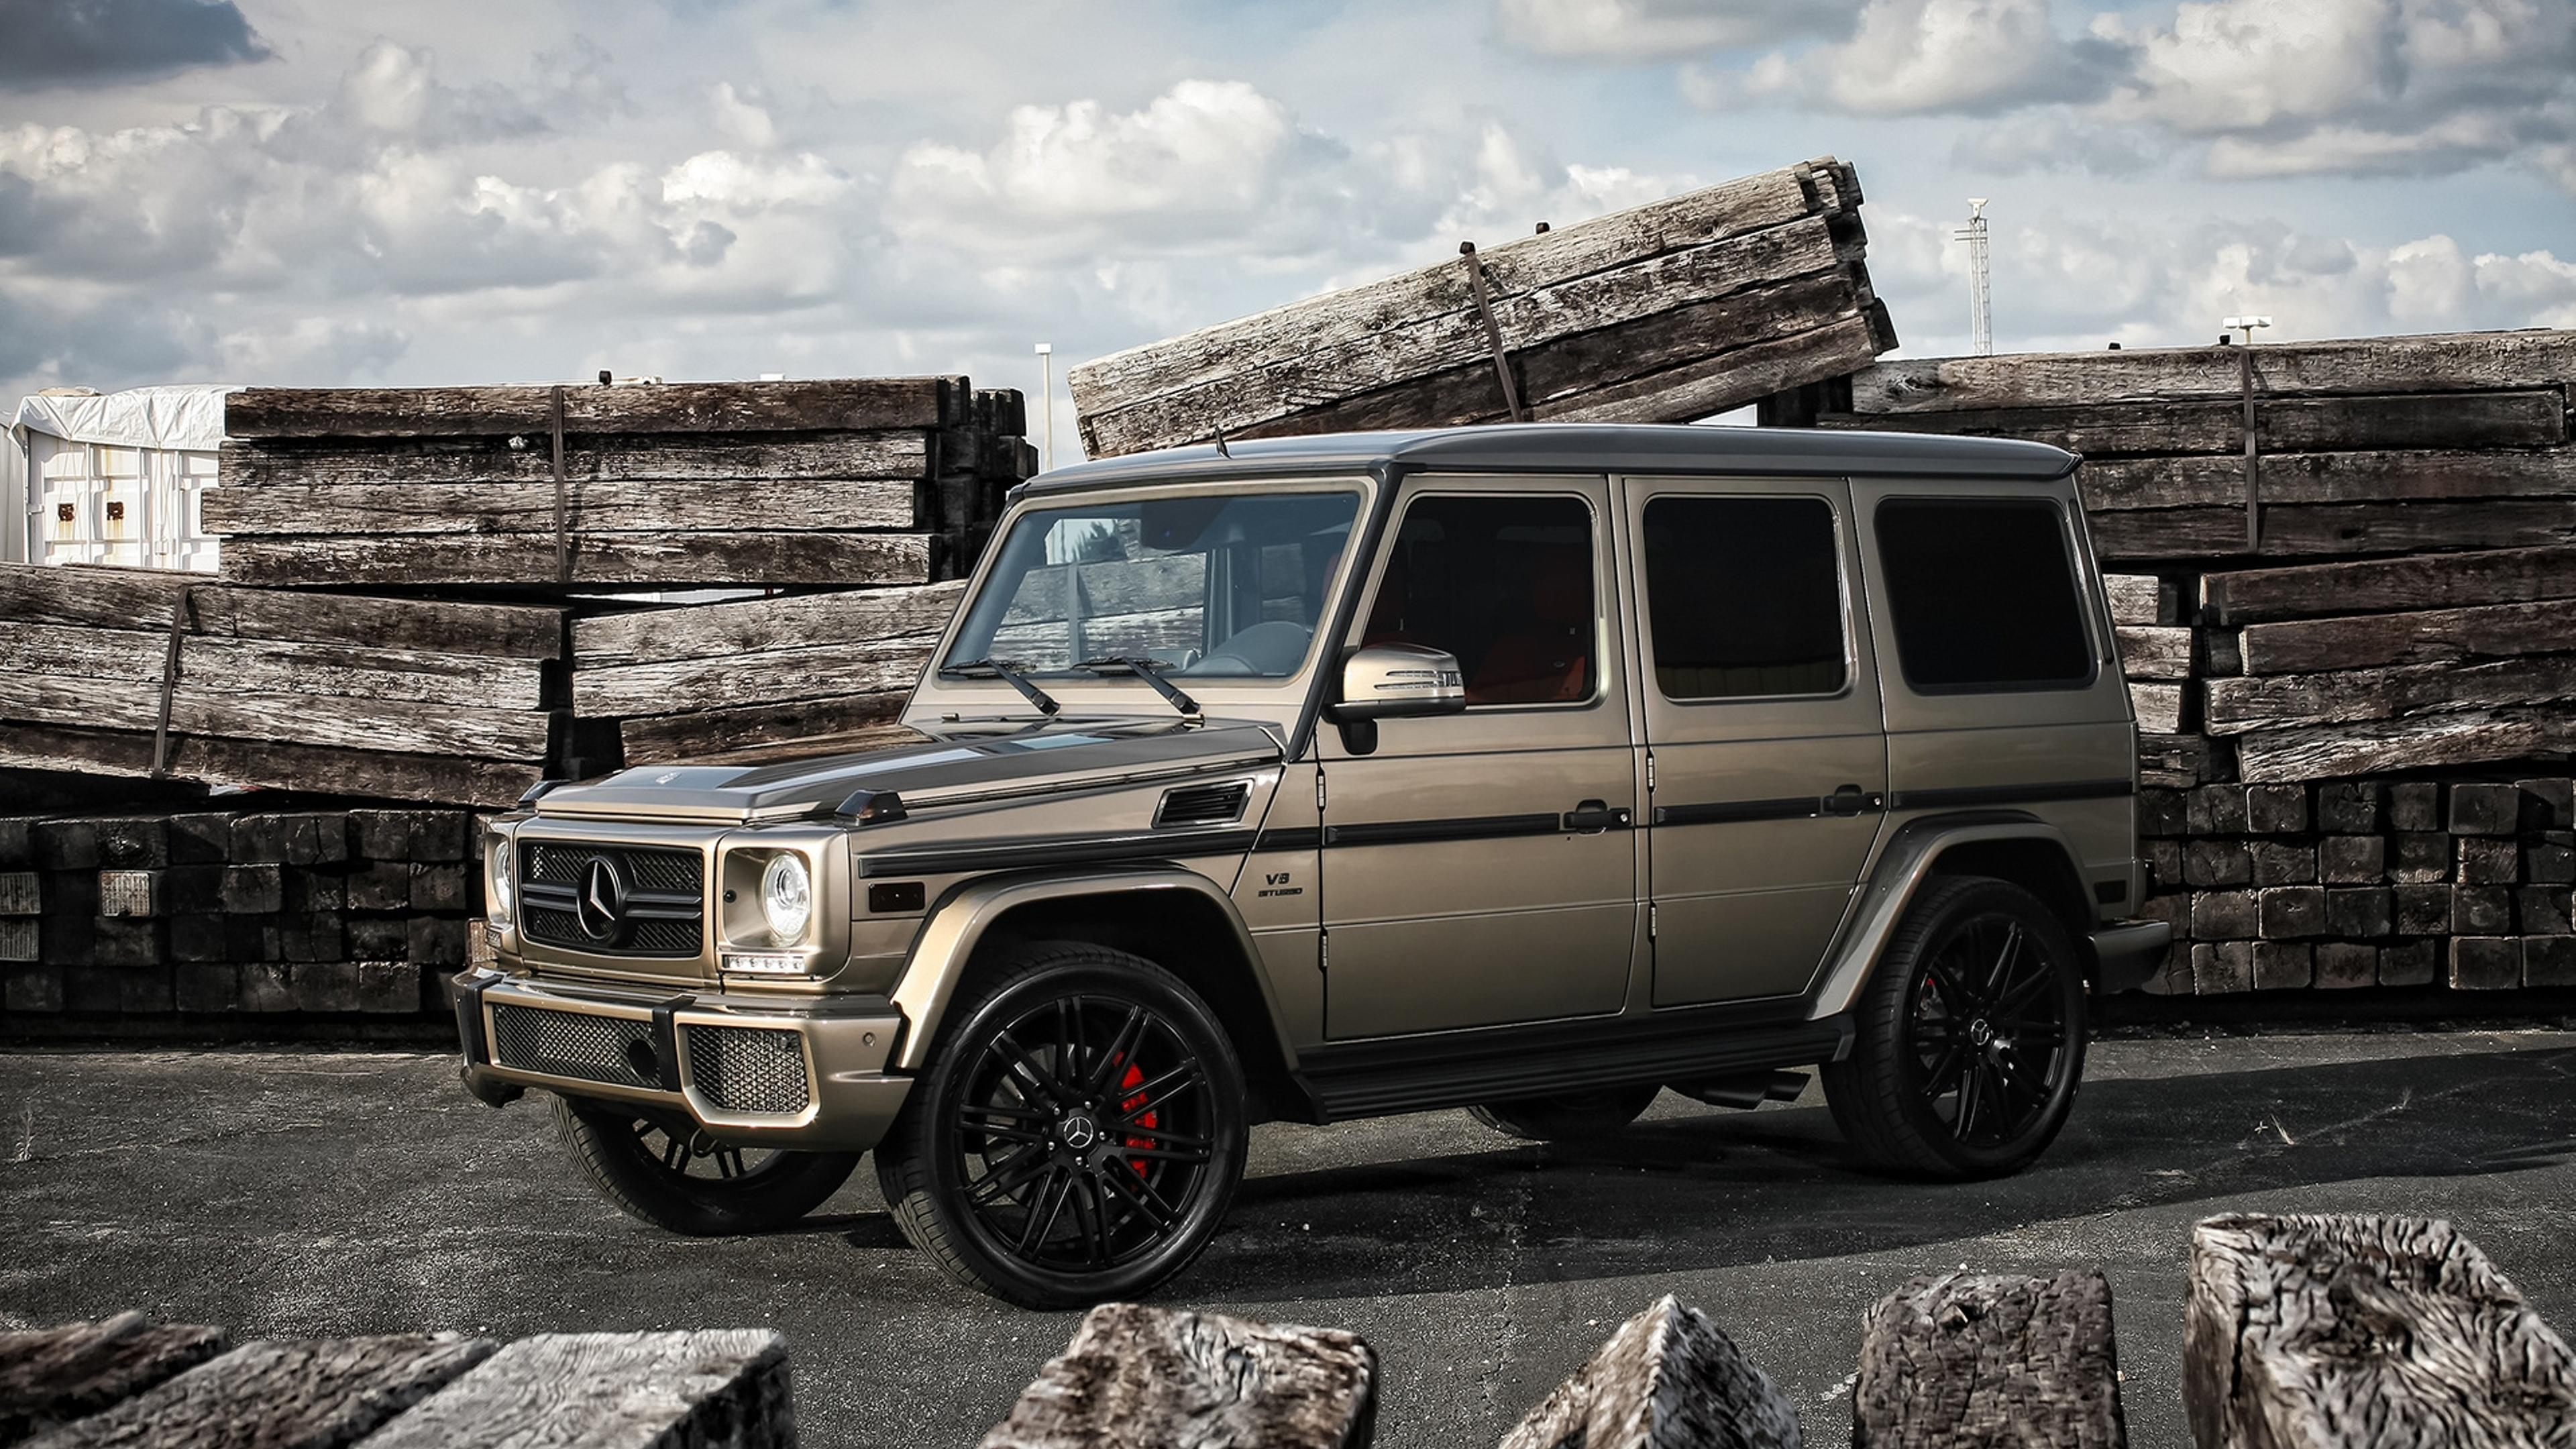 Mercedes Benz G55 Amg Hd Wallpaper Download 3840x2160